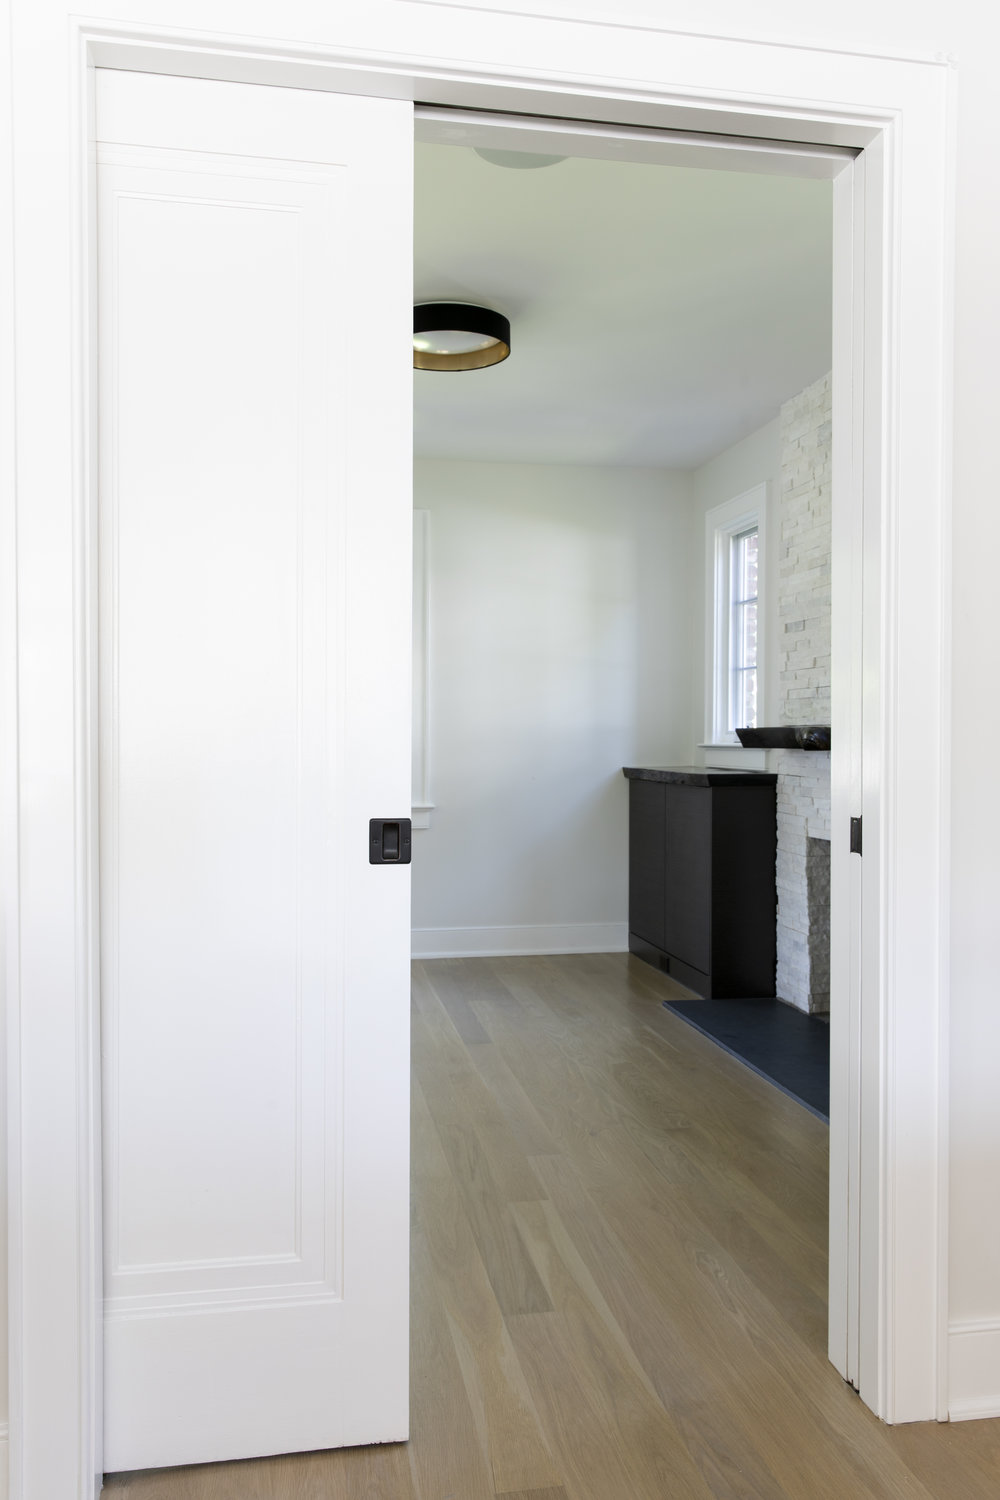 pocket door 38.jpg